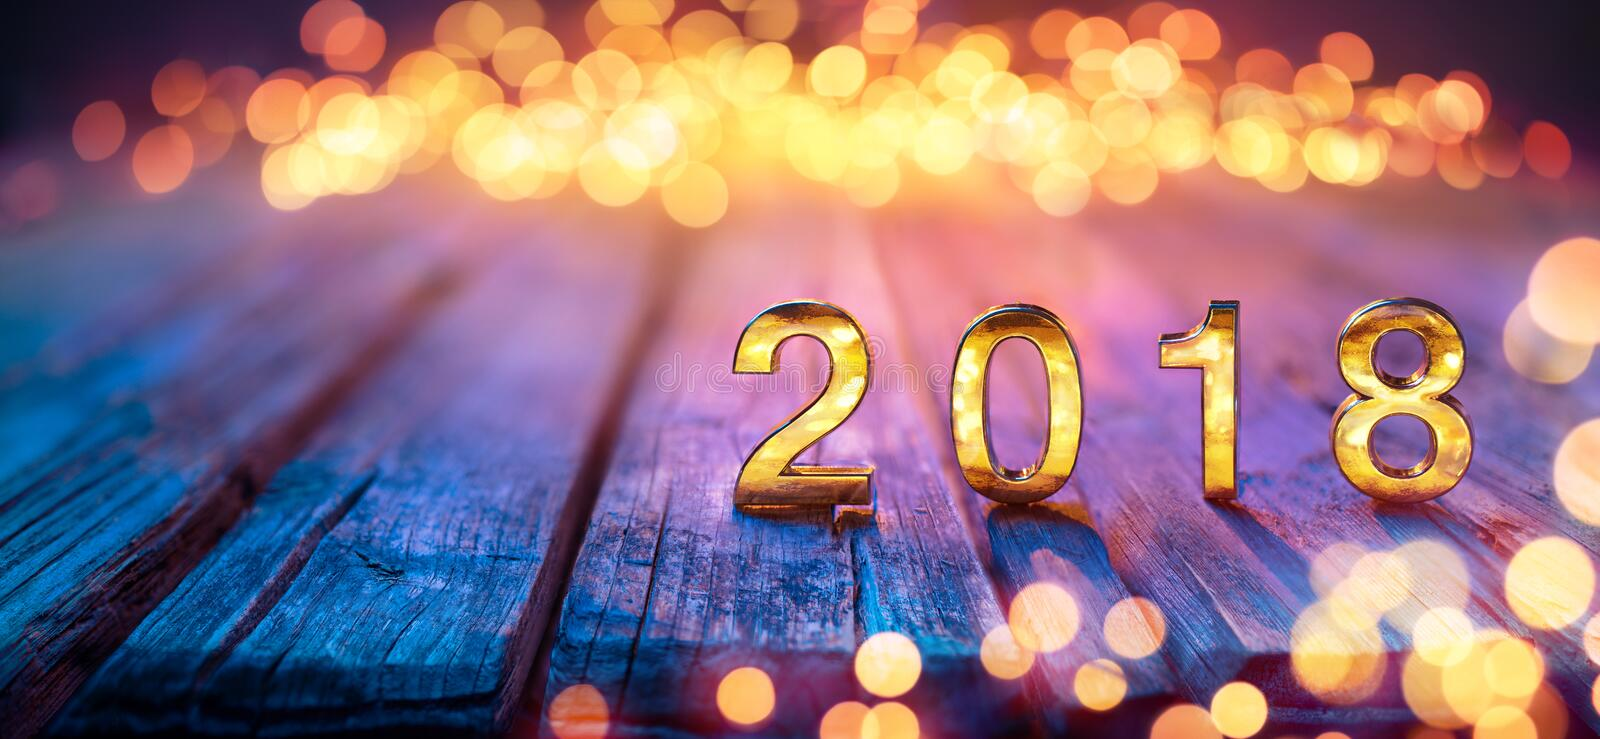 2018 - Happy New Year - Golden Numbers On Defocused Table stock photography